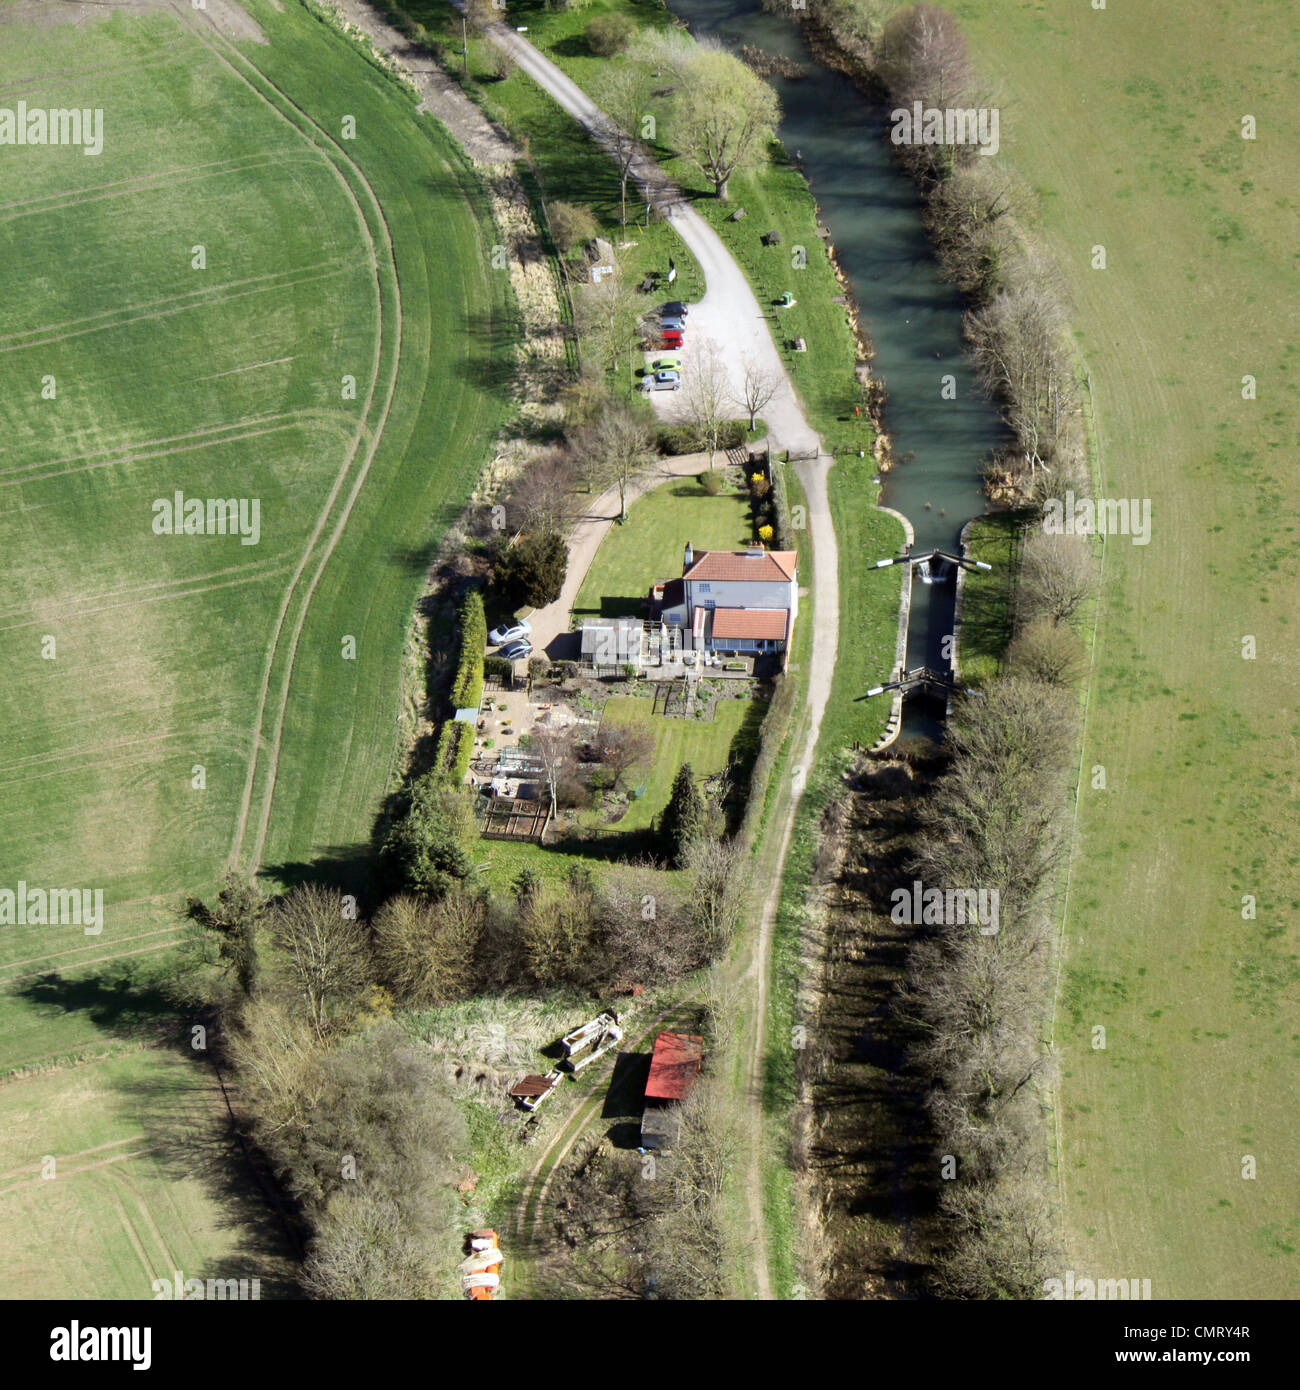 Aerial view of canal lock and lock keepers cottage - Stock Image